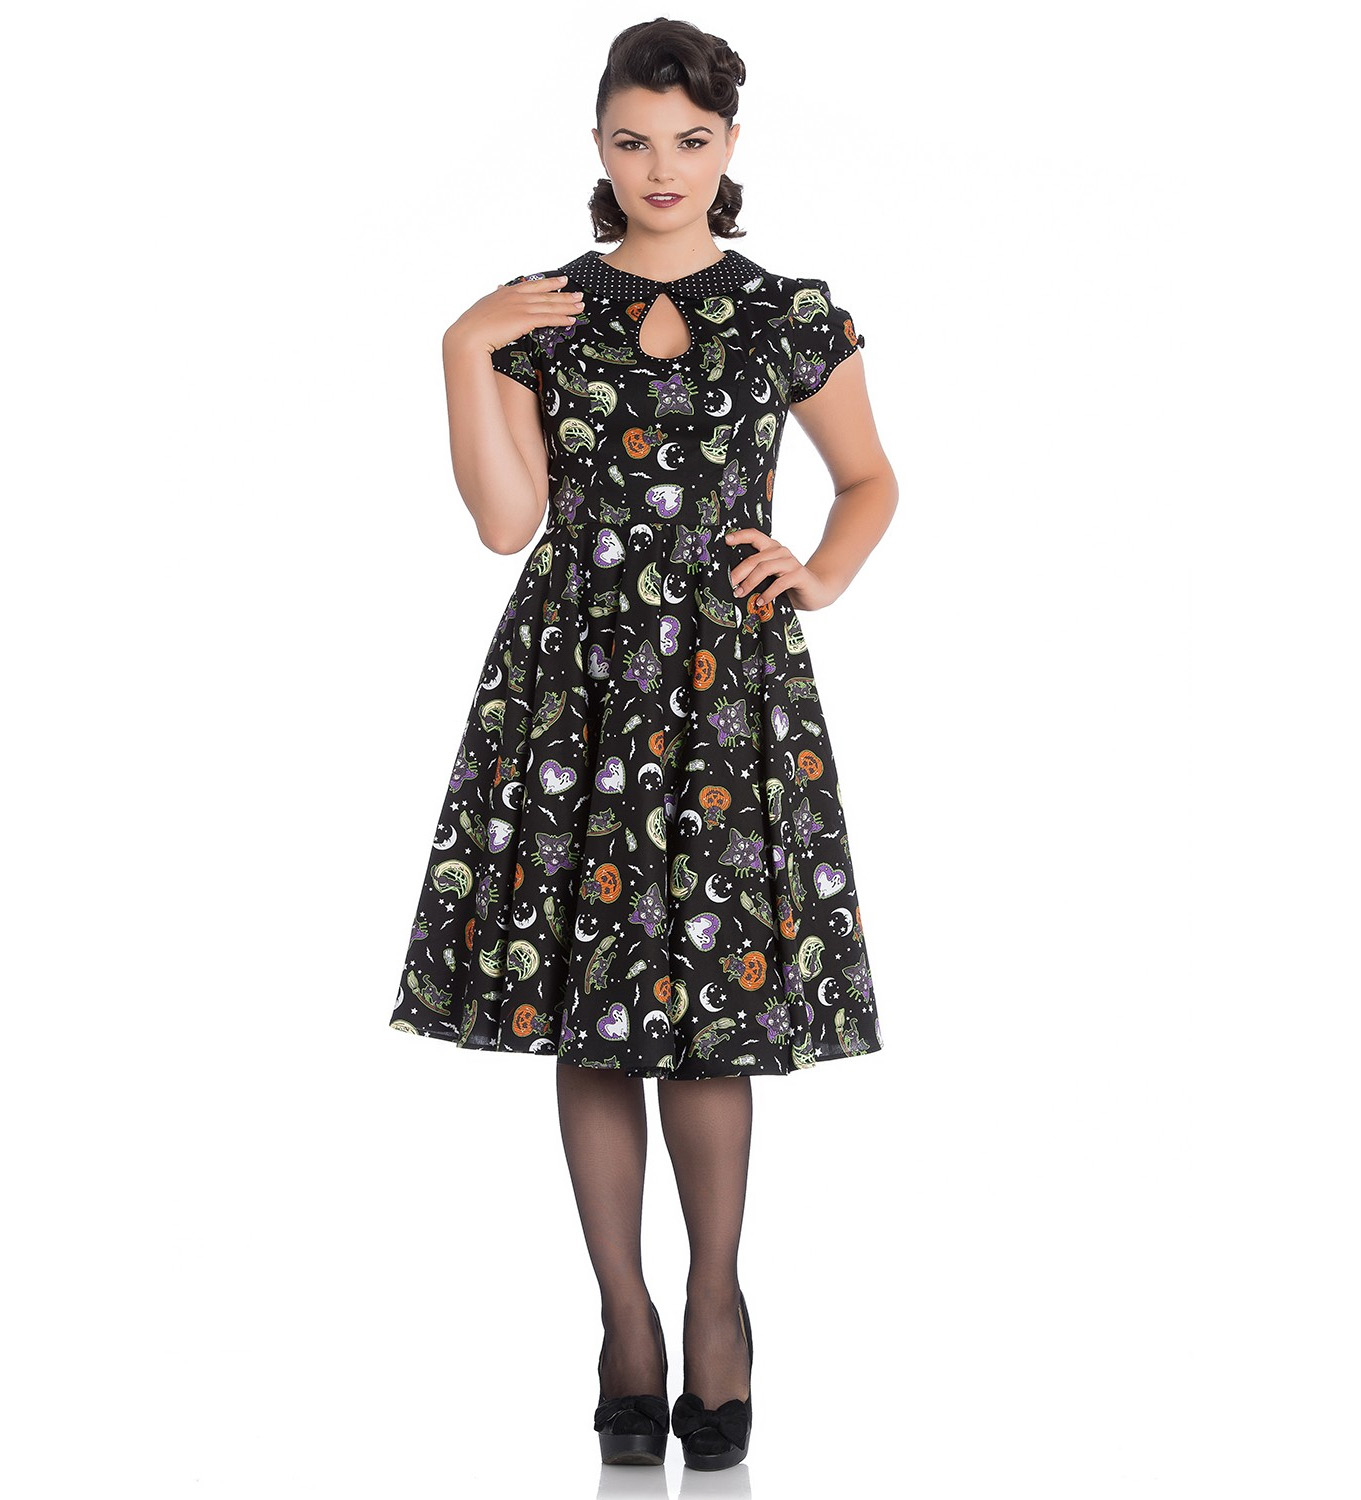 Hell-Bunny-50s-Black-Pin-Up-Dress-Horror-Witchy-SALEM-Halloween-All-Sizes thumbnail 27